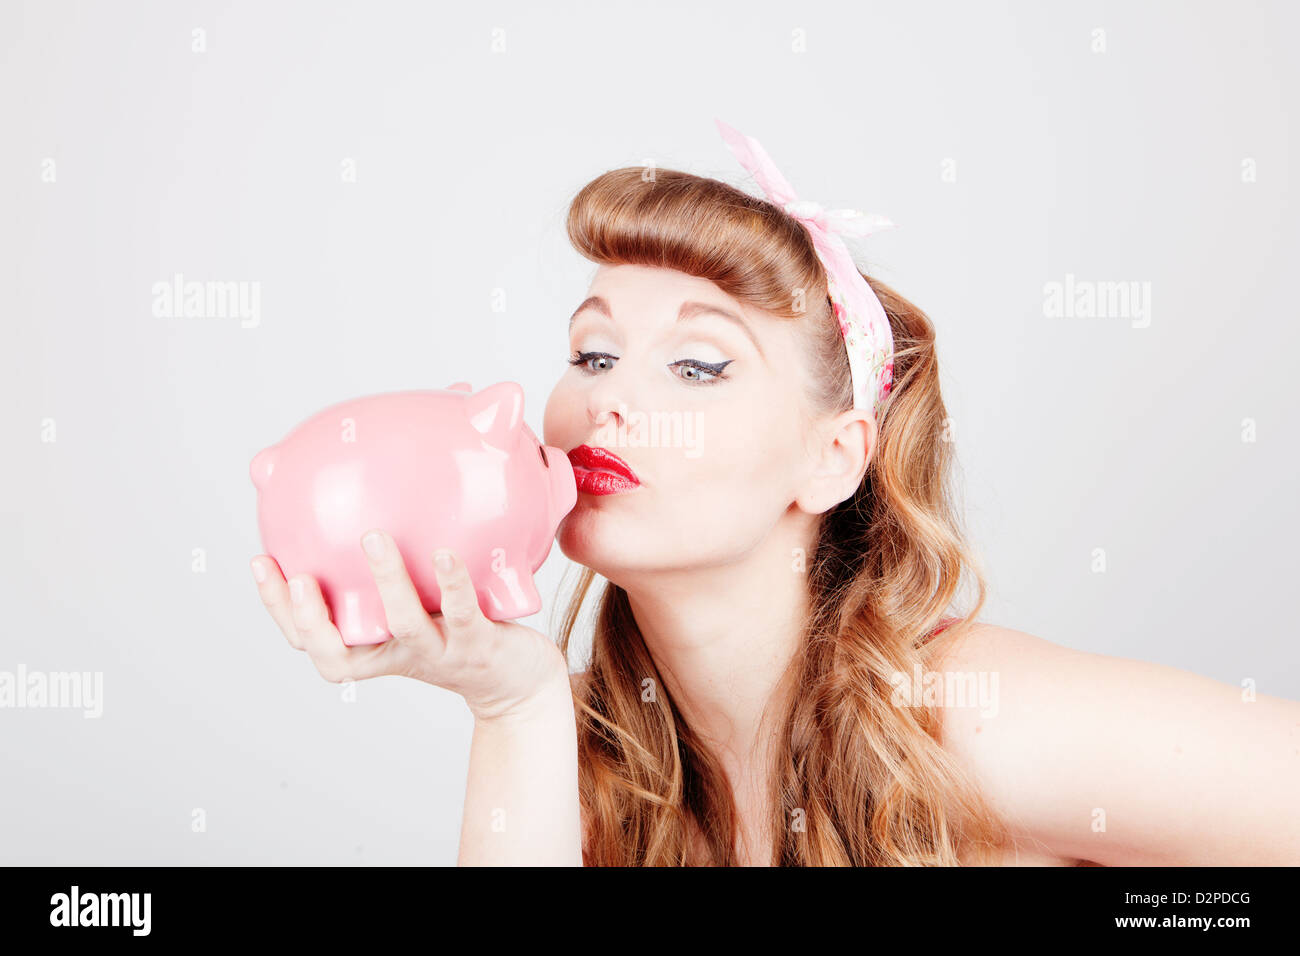 retro pinup woman with piggy bank as saving or spending concept - Stock Image